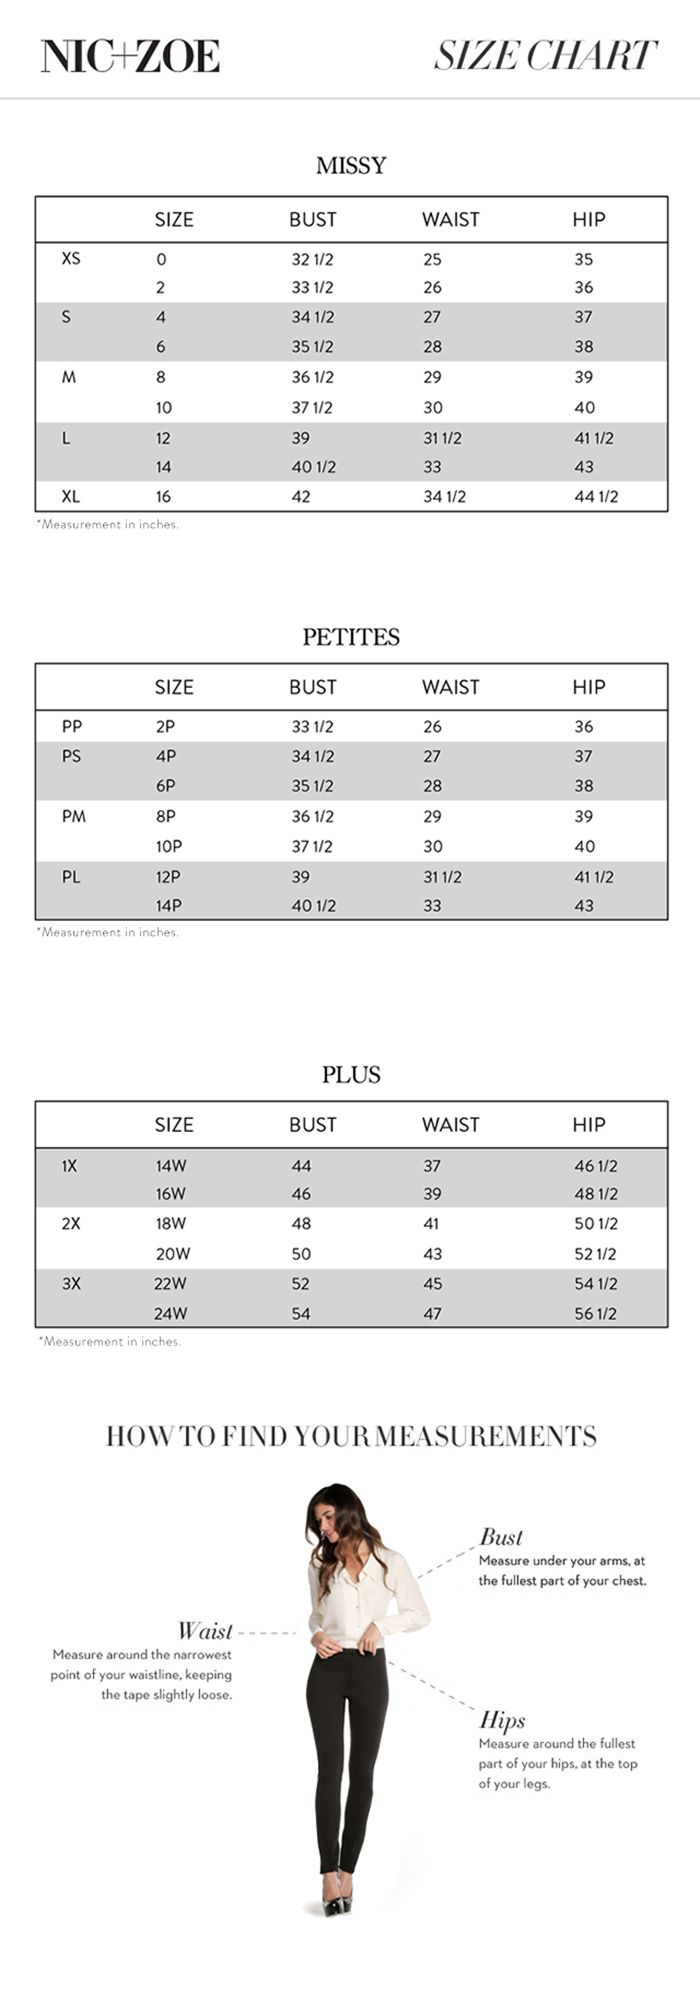 Pin On Brand Name Plus Size Charts